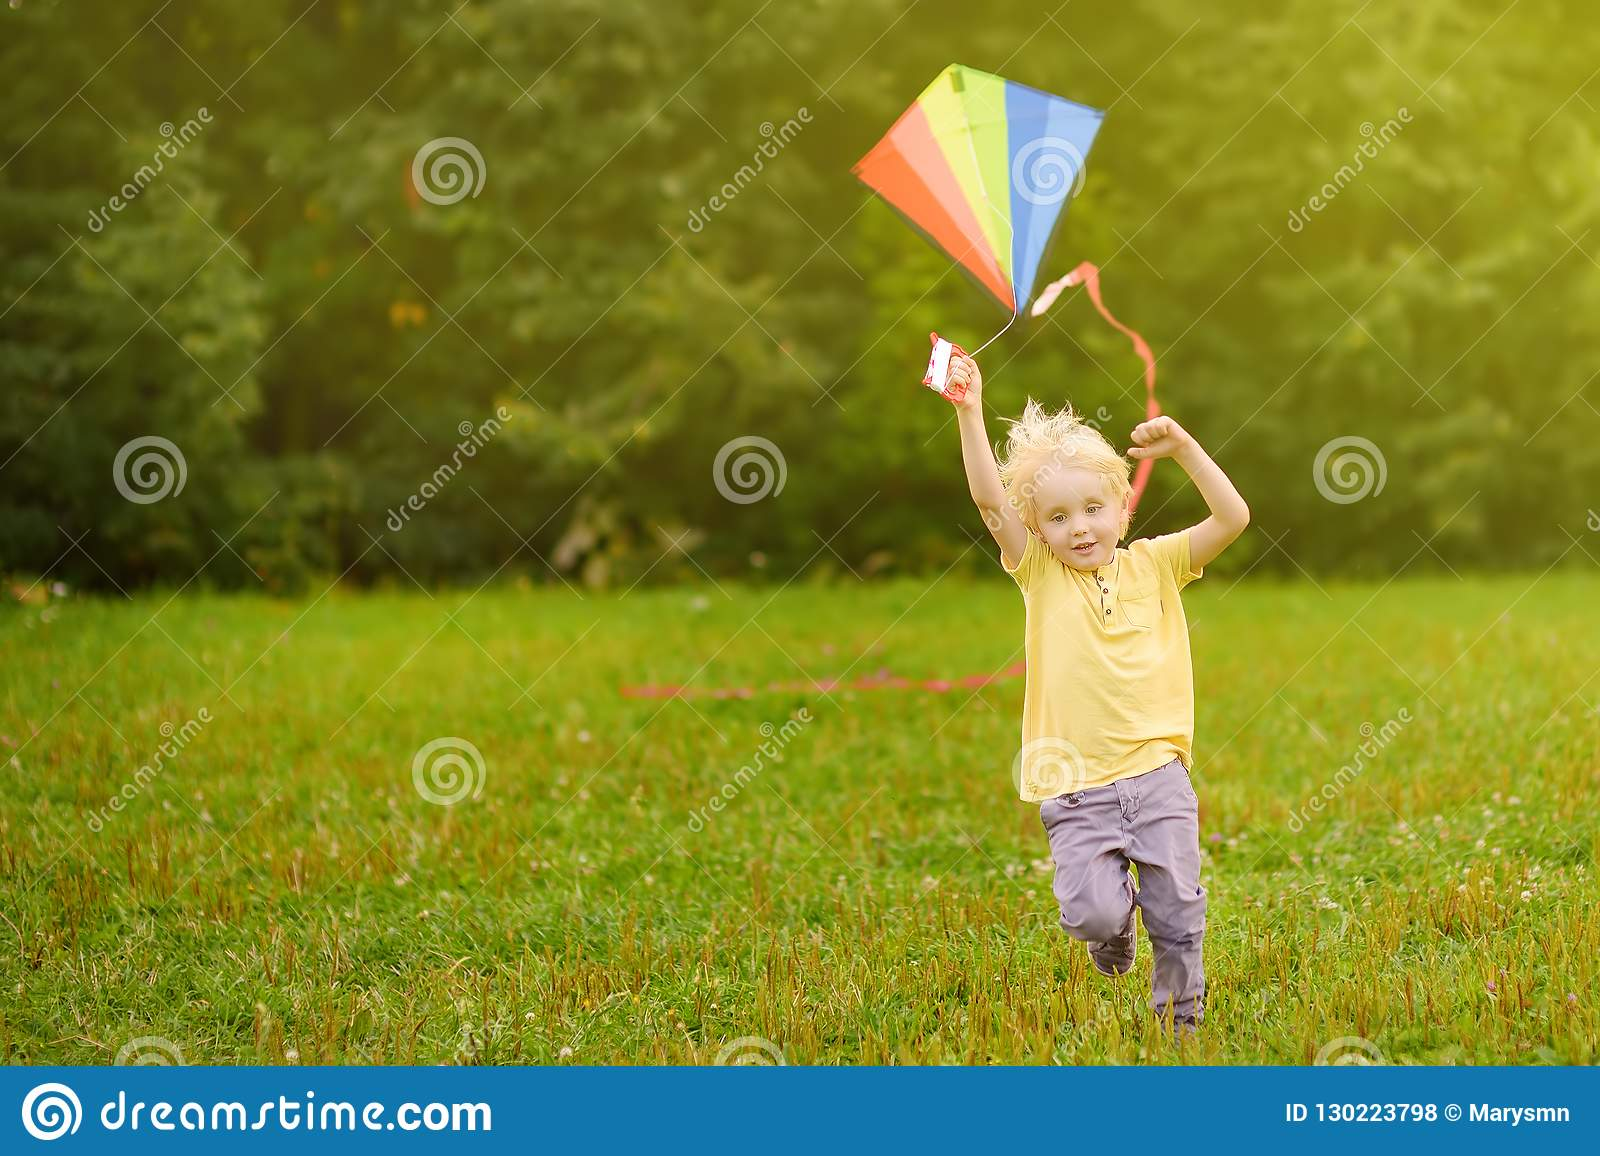 Little Boy On A Sunny Day Launches A Flying Kite Stock